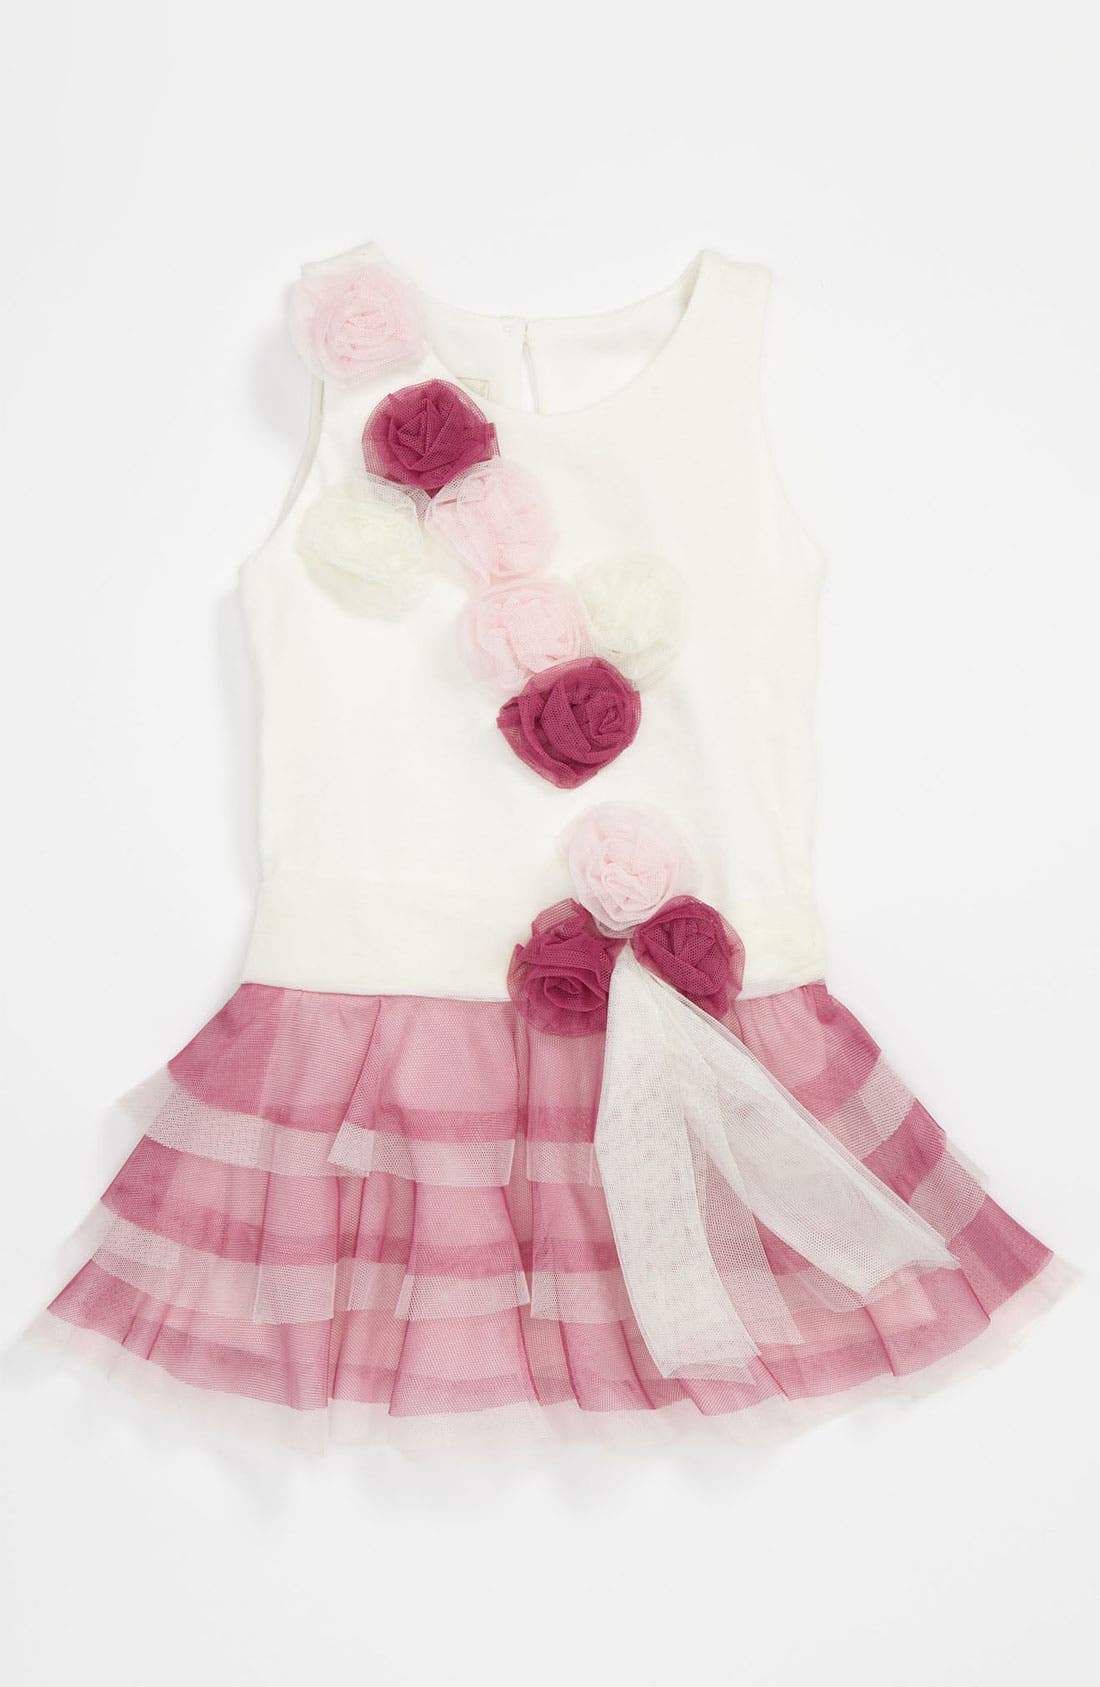 Alternate Image 1 Selected - Isobella & Chloe Cotton & Tulle Dress (Baby)